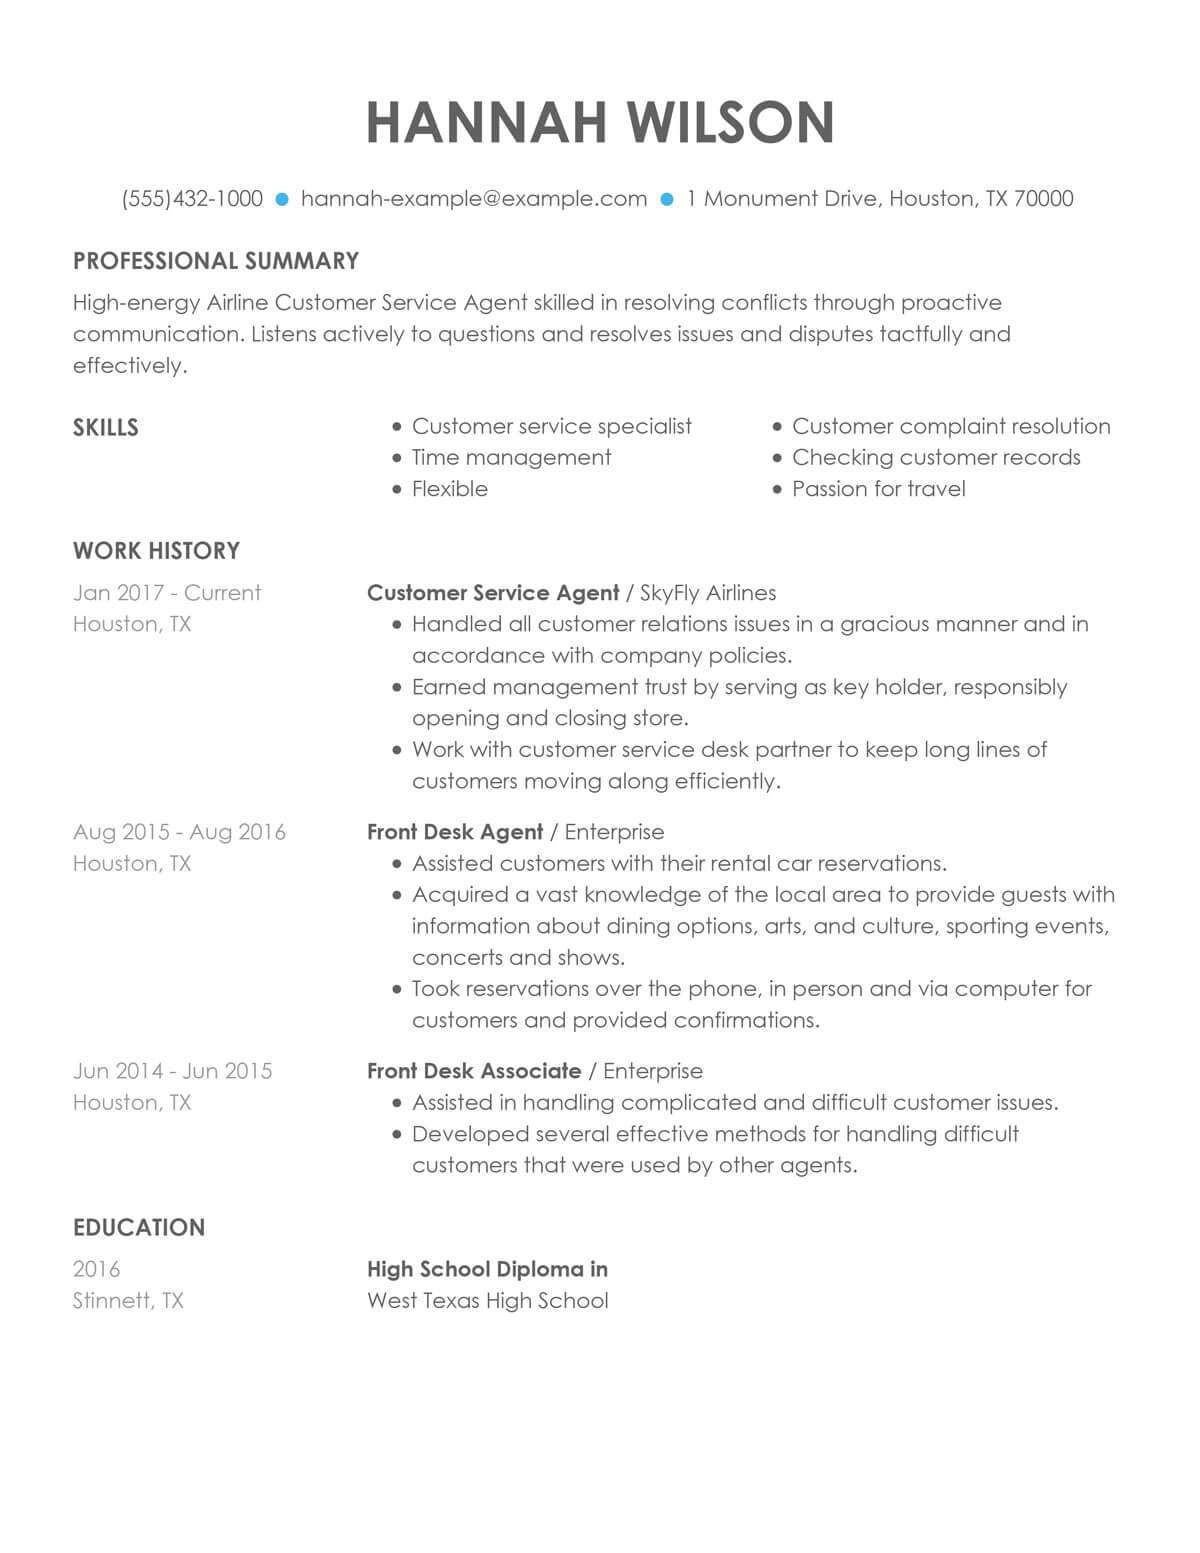 customize our customer representative resume example service description for airline Resume Customer Service Representative Description For Resume